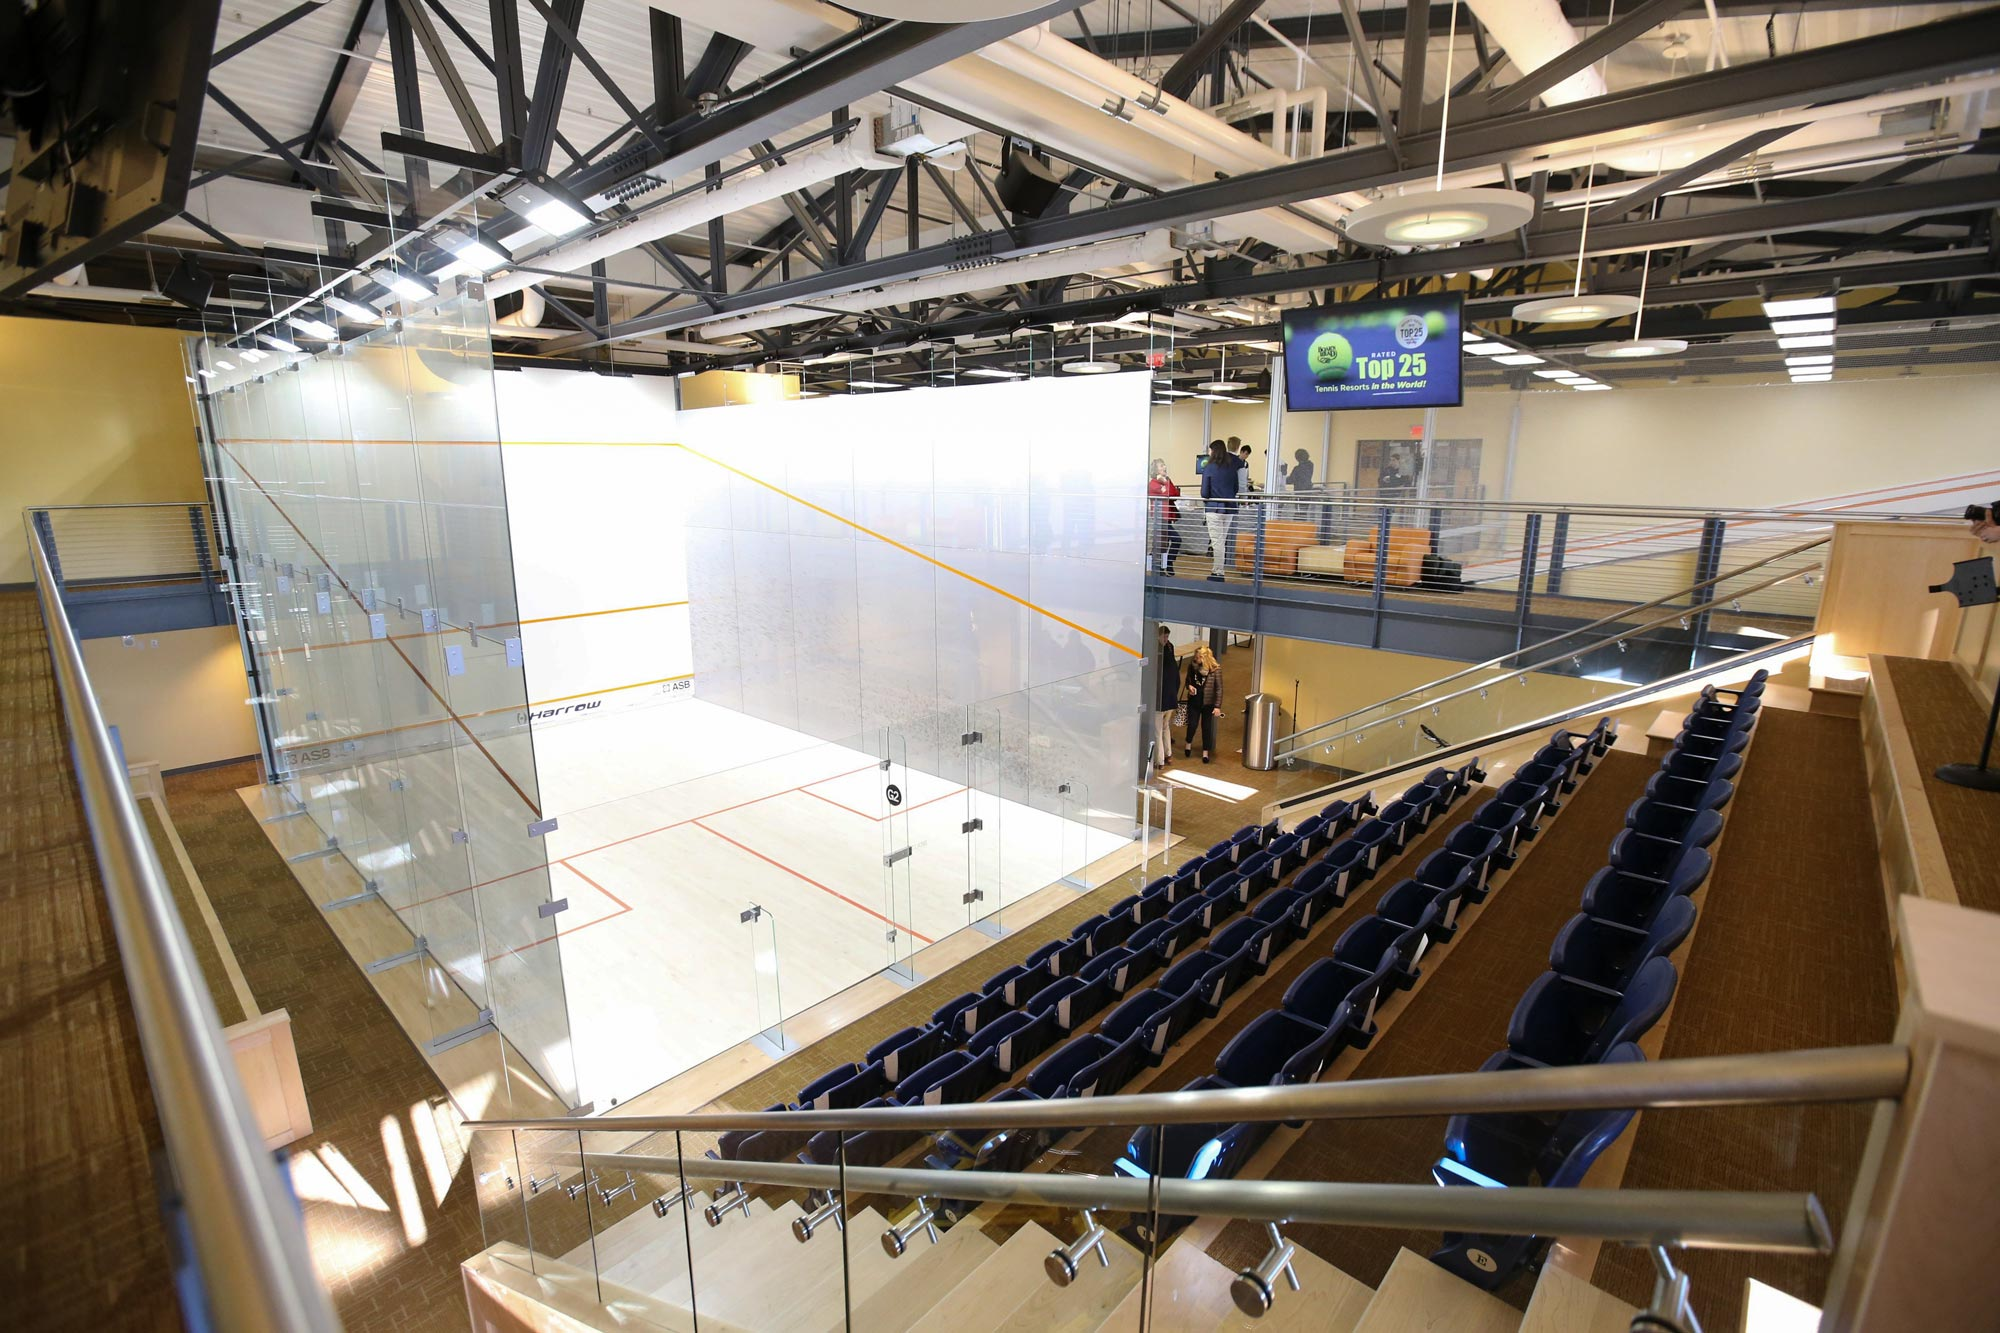 An exhibition squash match at the Boar's Head Sports Club has the Charlottesville squash community excited.